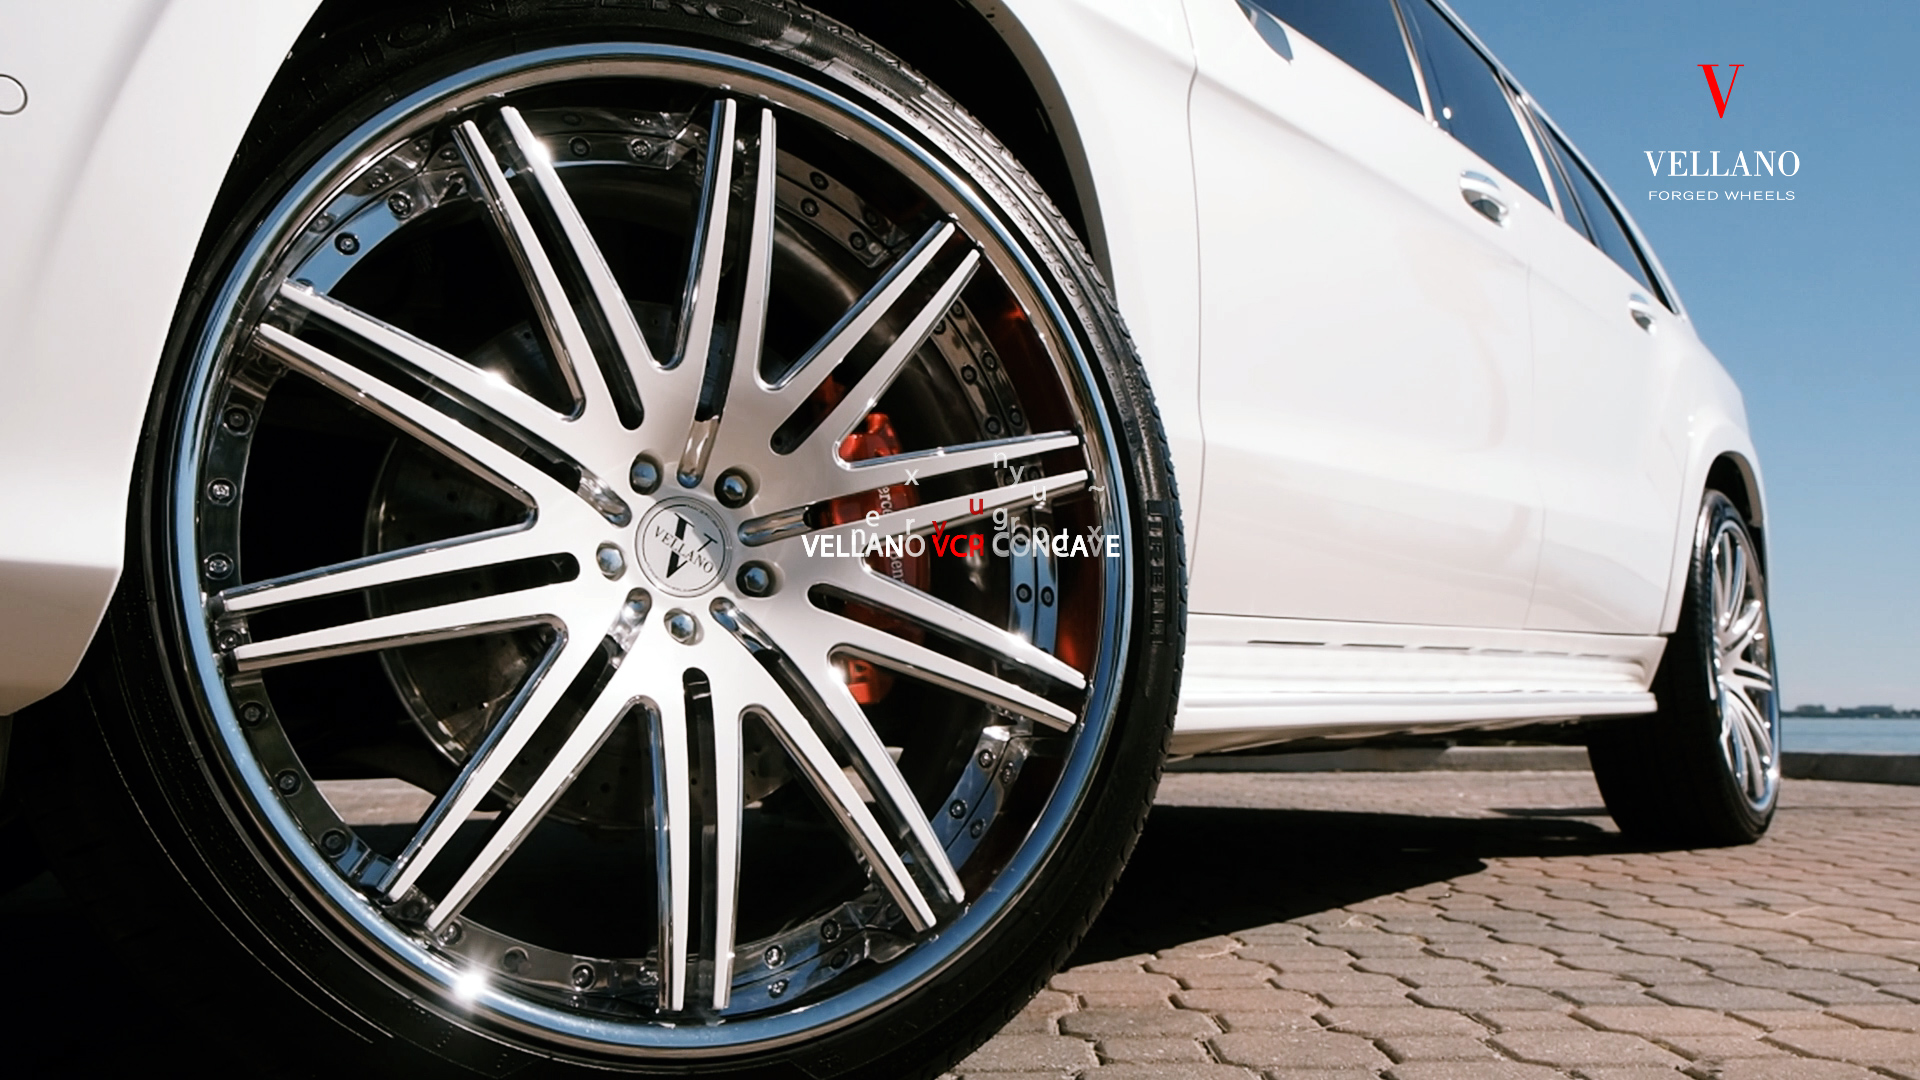 Vellano VCP Concave On Mercedes Benz GL550